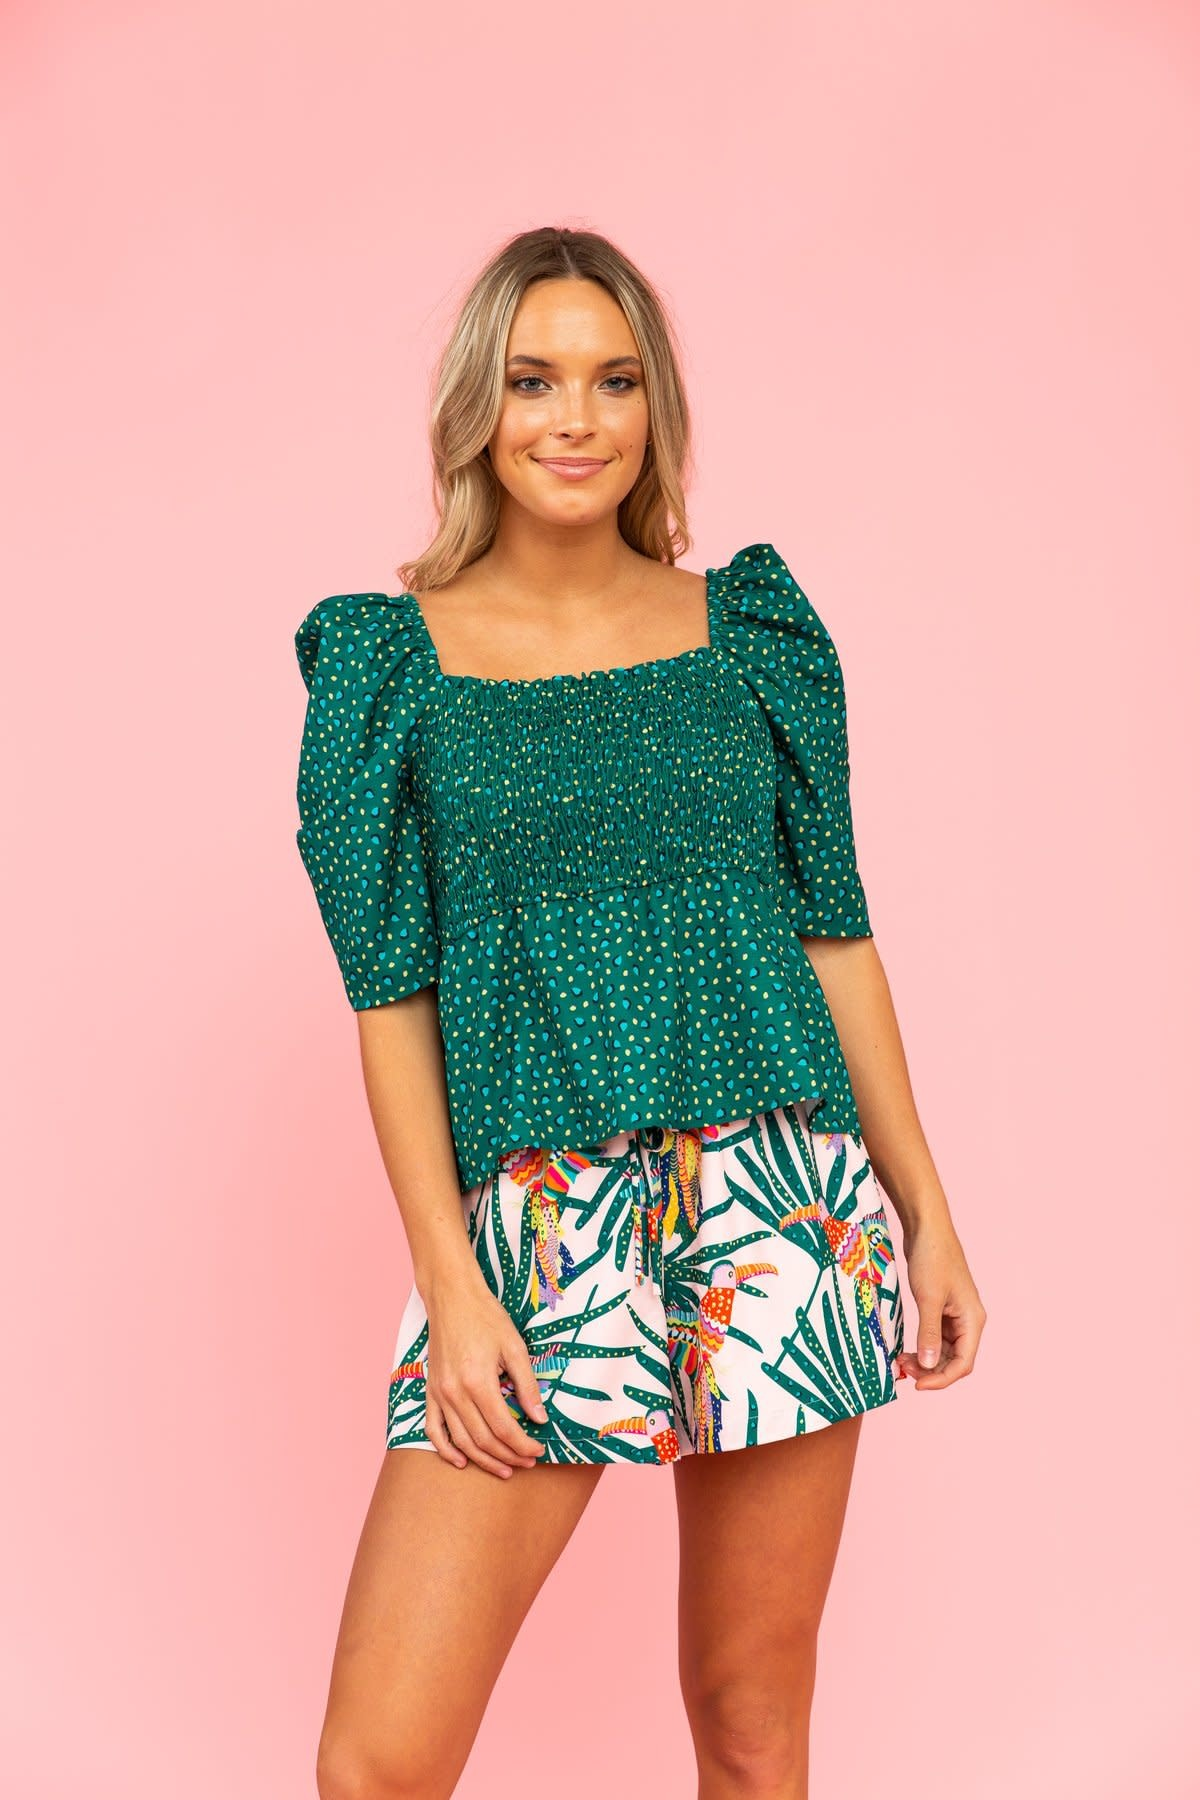 Crosby By Mollie Burch Maebel Top in Aloe Leaf